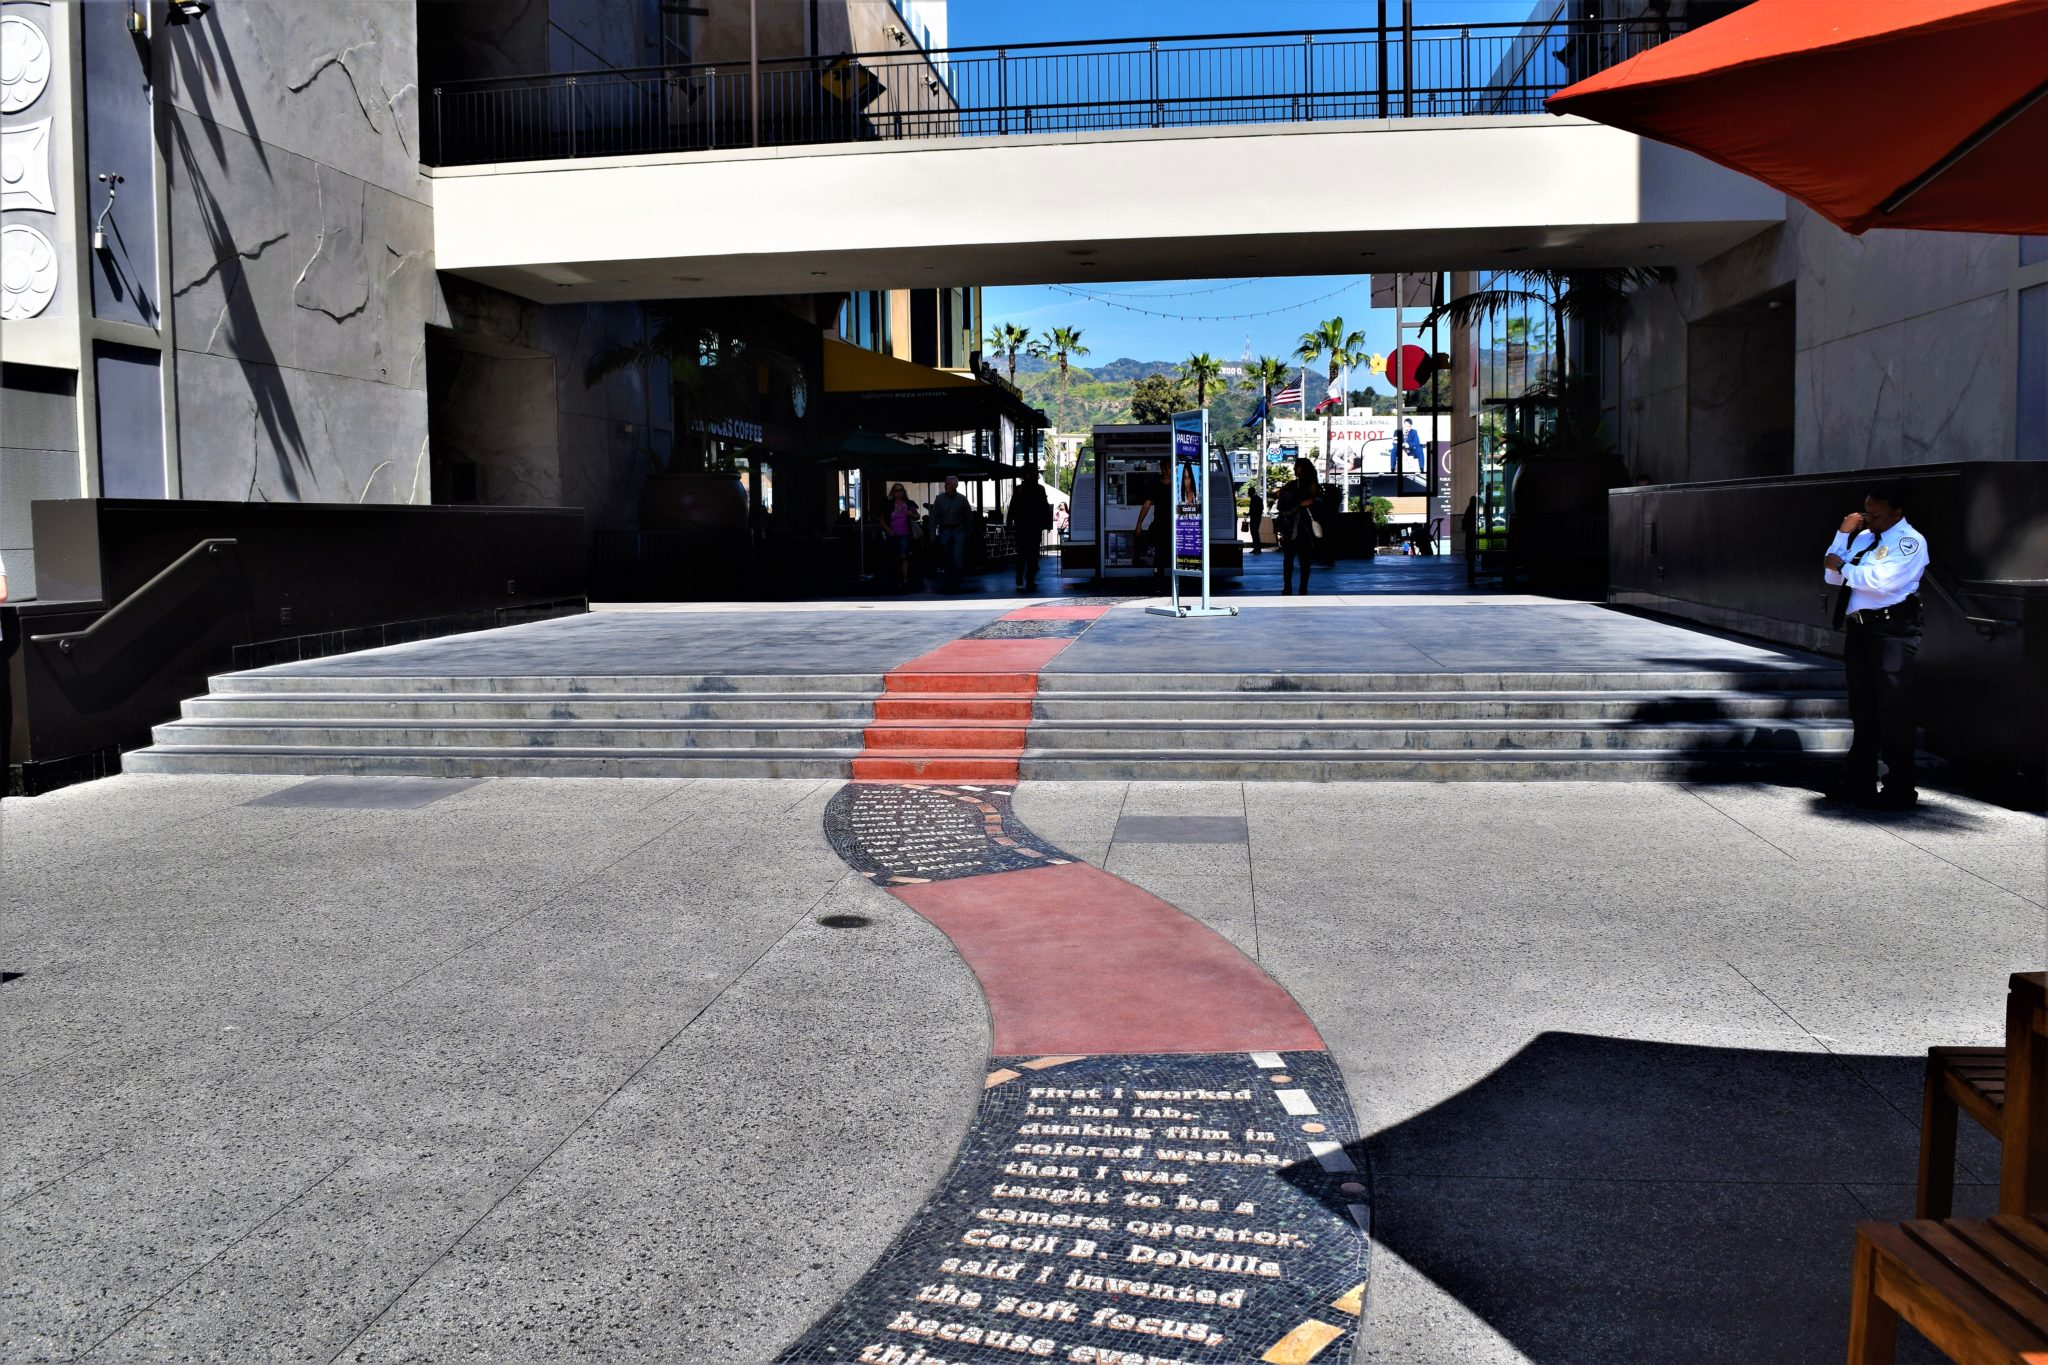 Hollywood and highland center, Road to hollywood path, los angeles